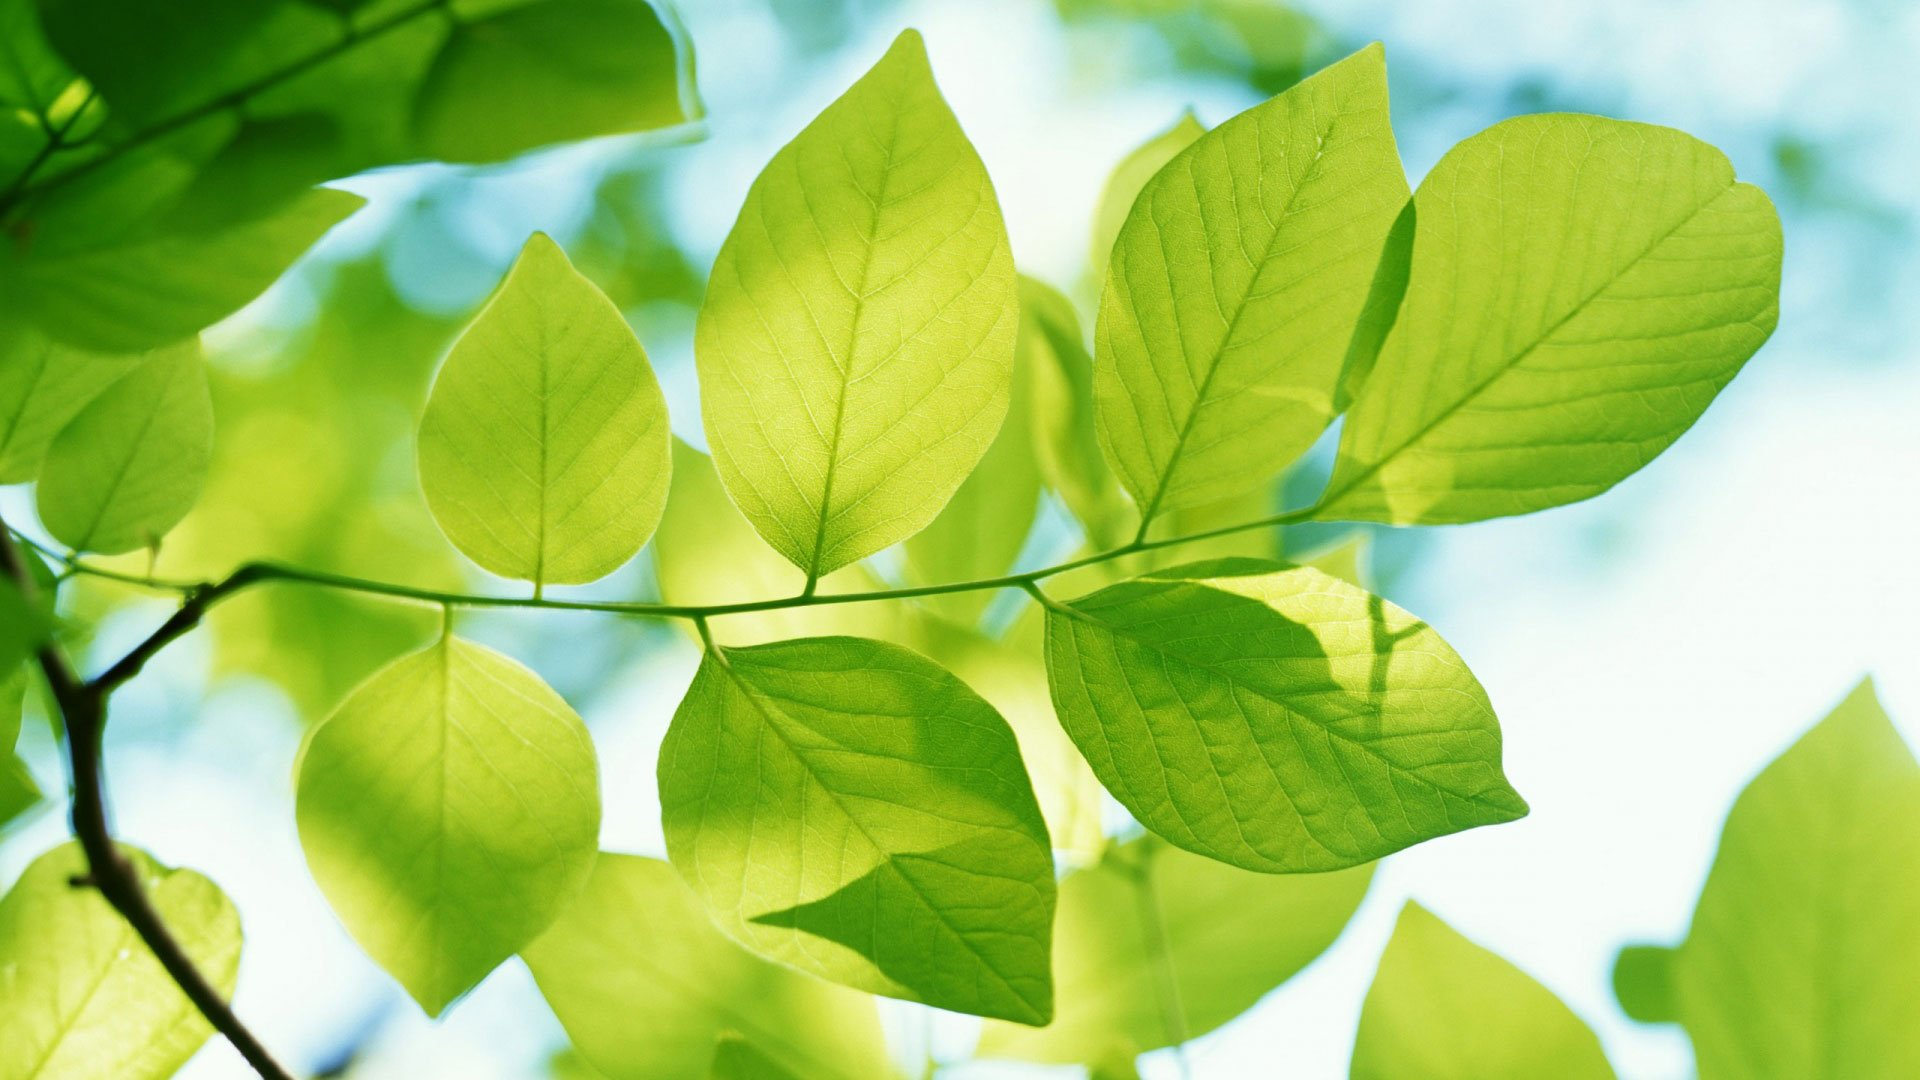 leaves green wallpaper autumn wallpapers walls 1920x1080 1920x1080